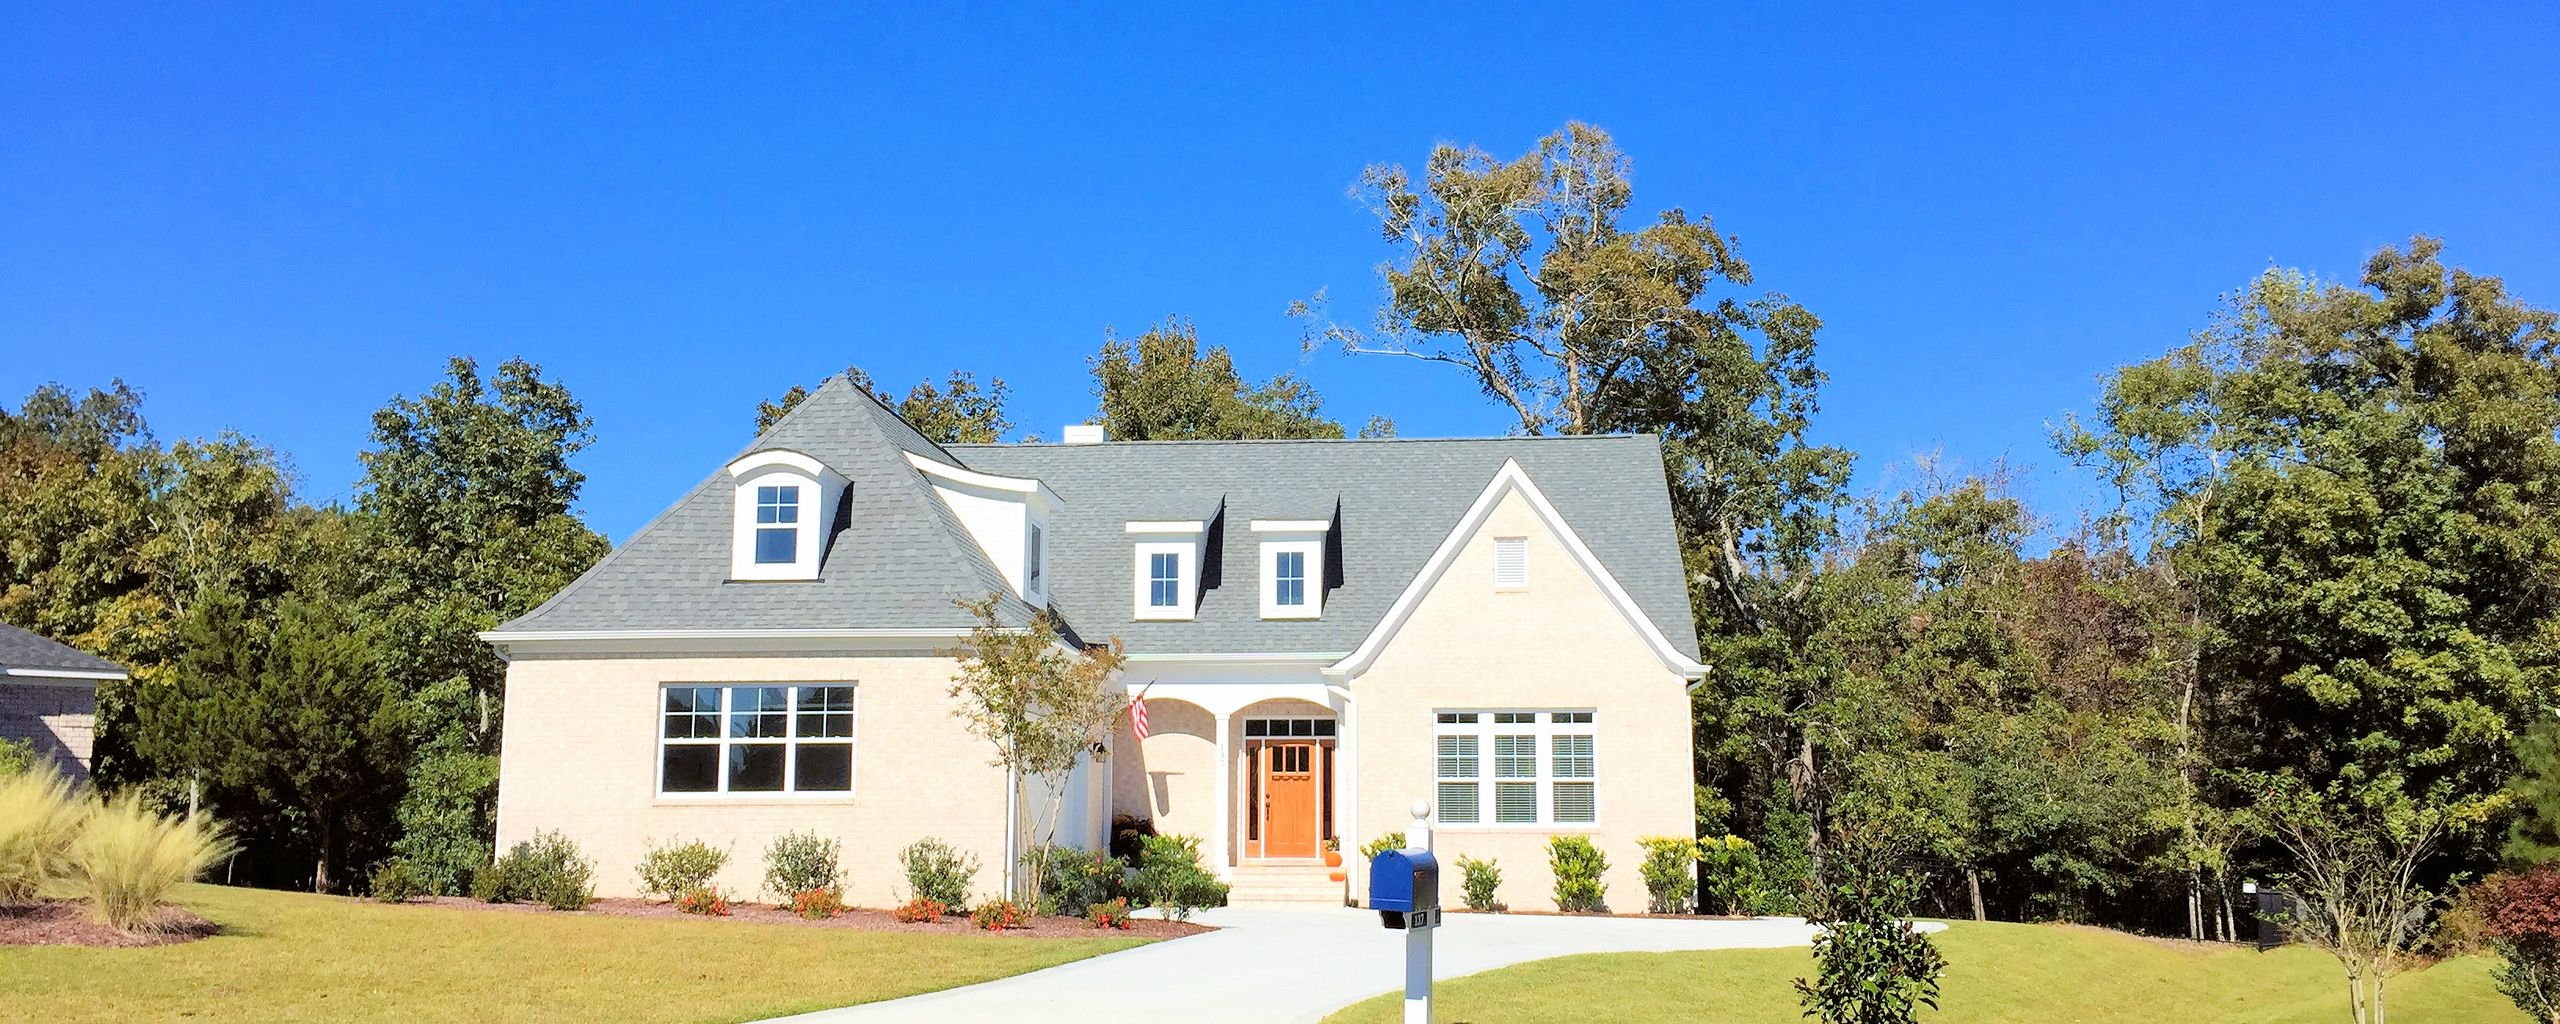 Olde Point Homes For Sale